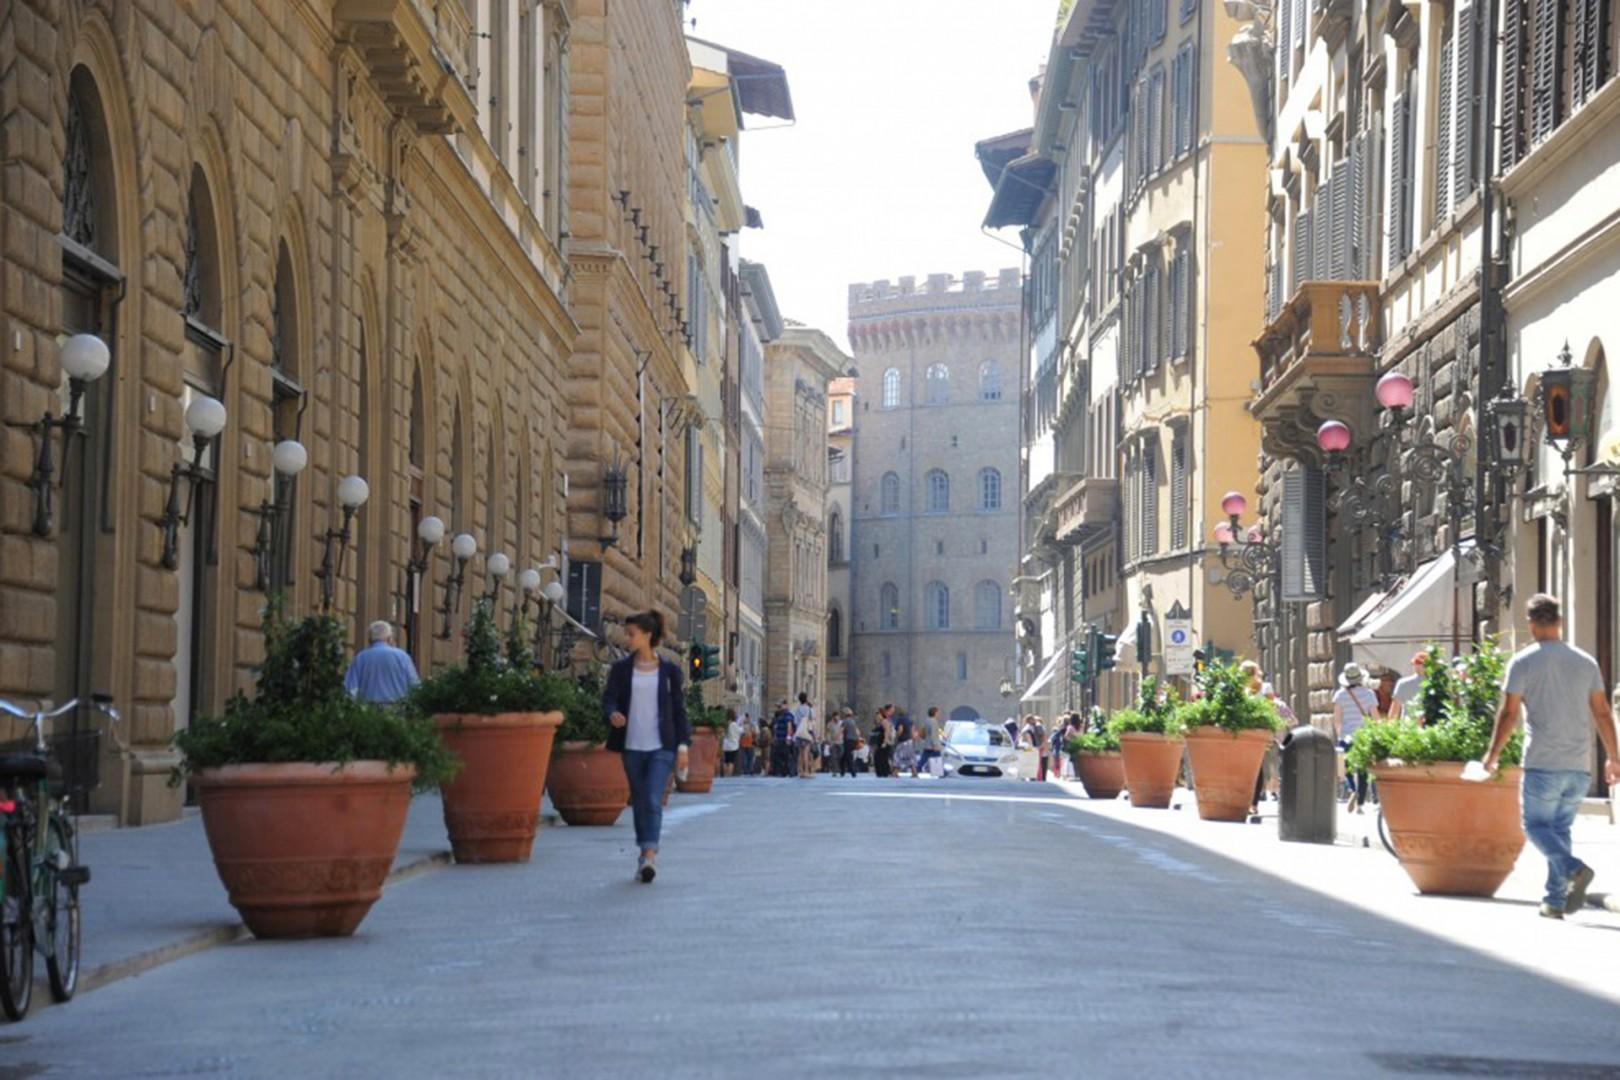 Via Tornabuoni is one of Florence's best shopping streets with some interesting food, too. Pedestrian street.